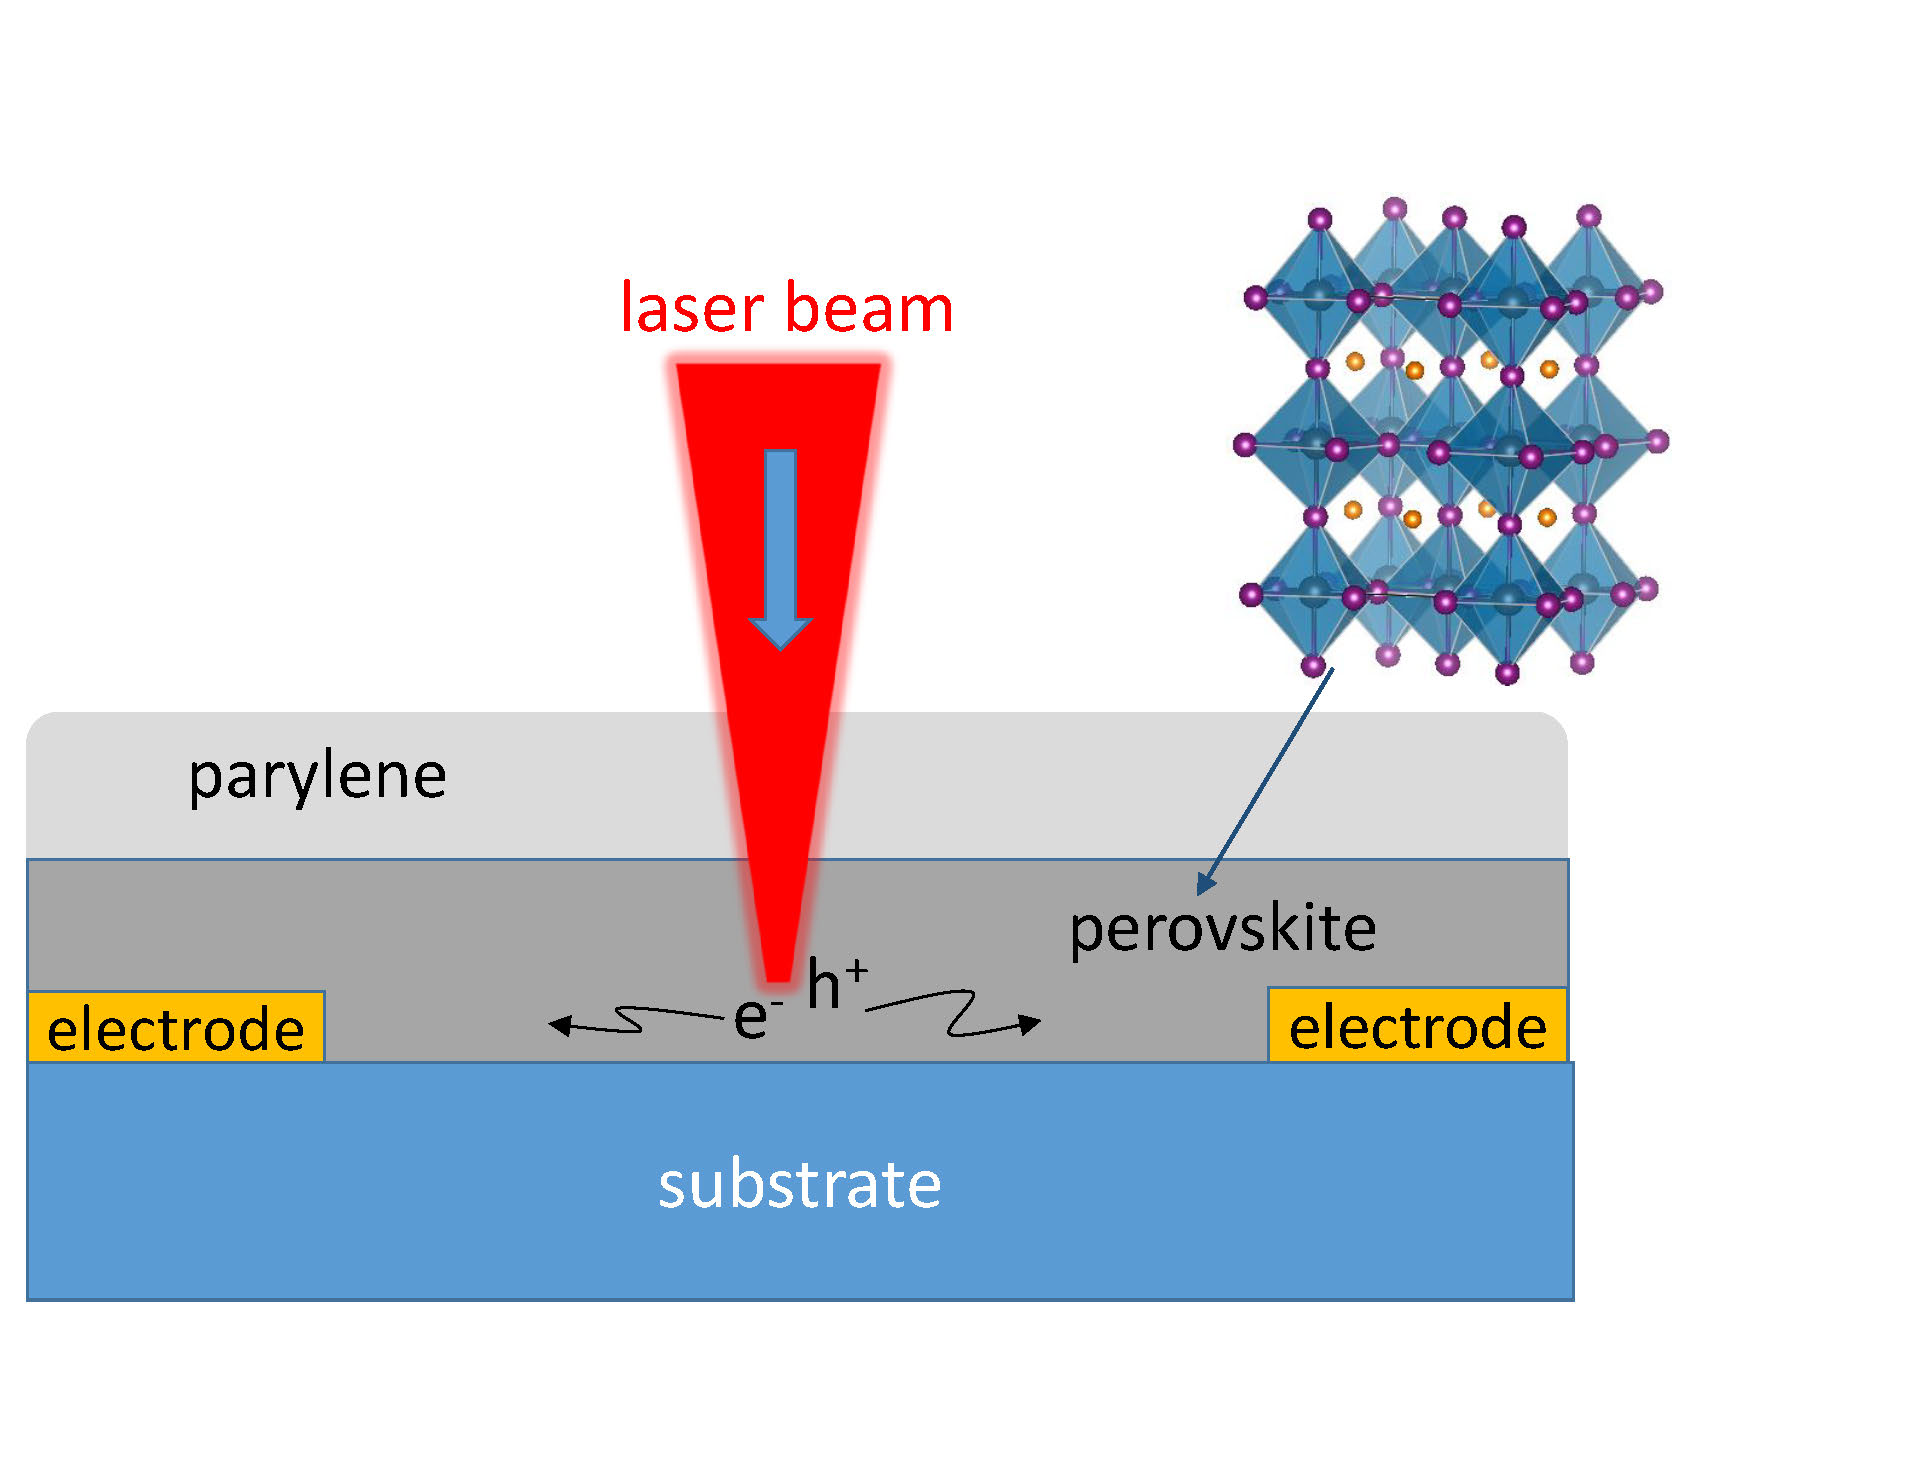 Scanning Photocurrent Imaging Microscopy Provided Direct Measurements of Perovskite Properties